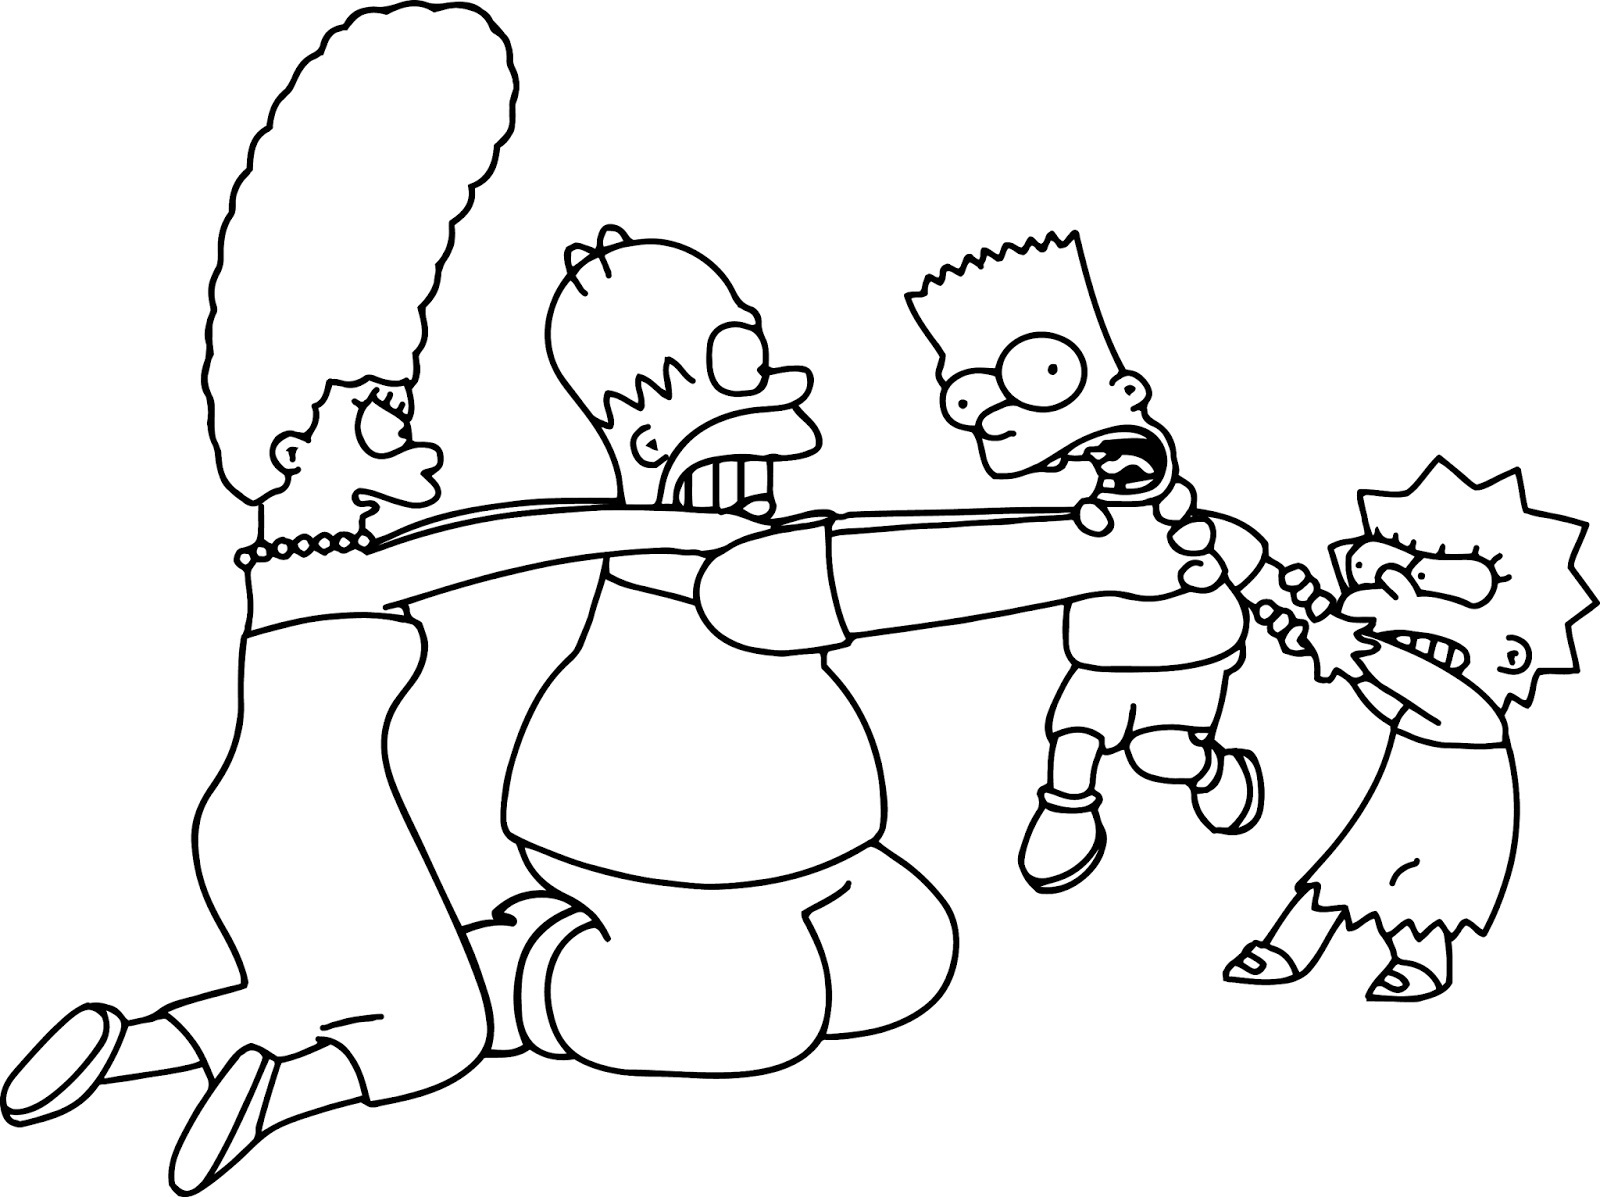 The Simpsons Coloring Pages Simpsons Coloring Pages The Simpsons Coloring Pages Birijus